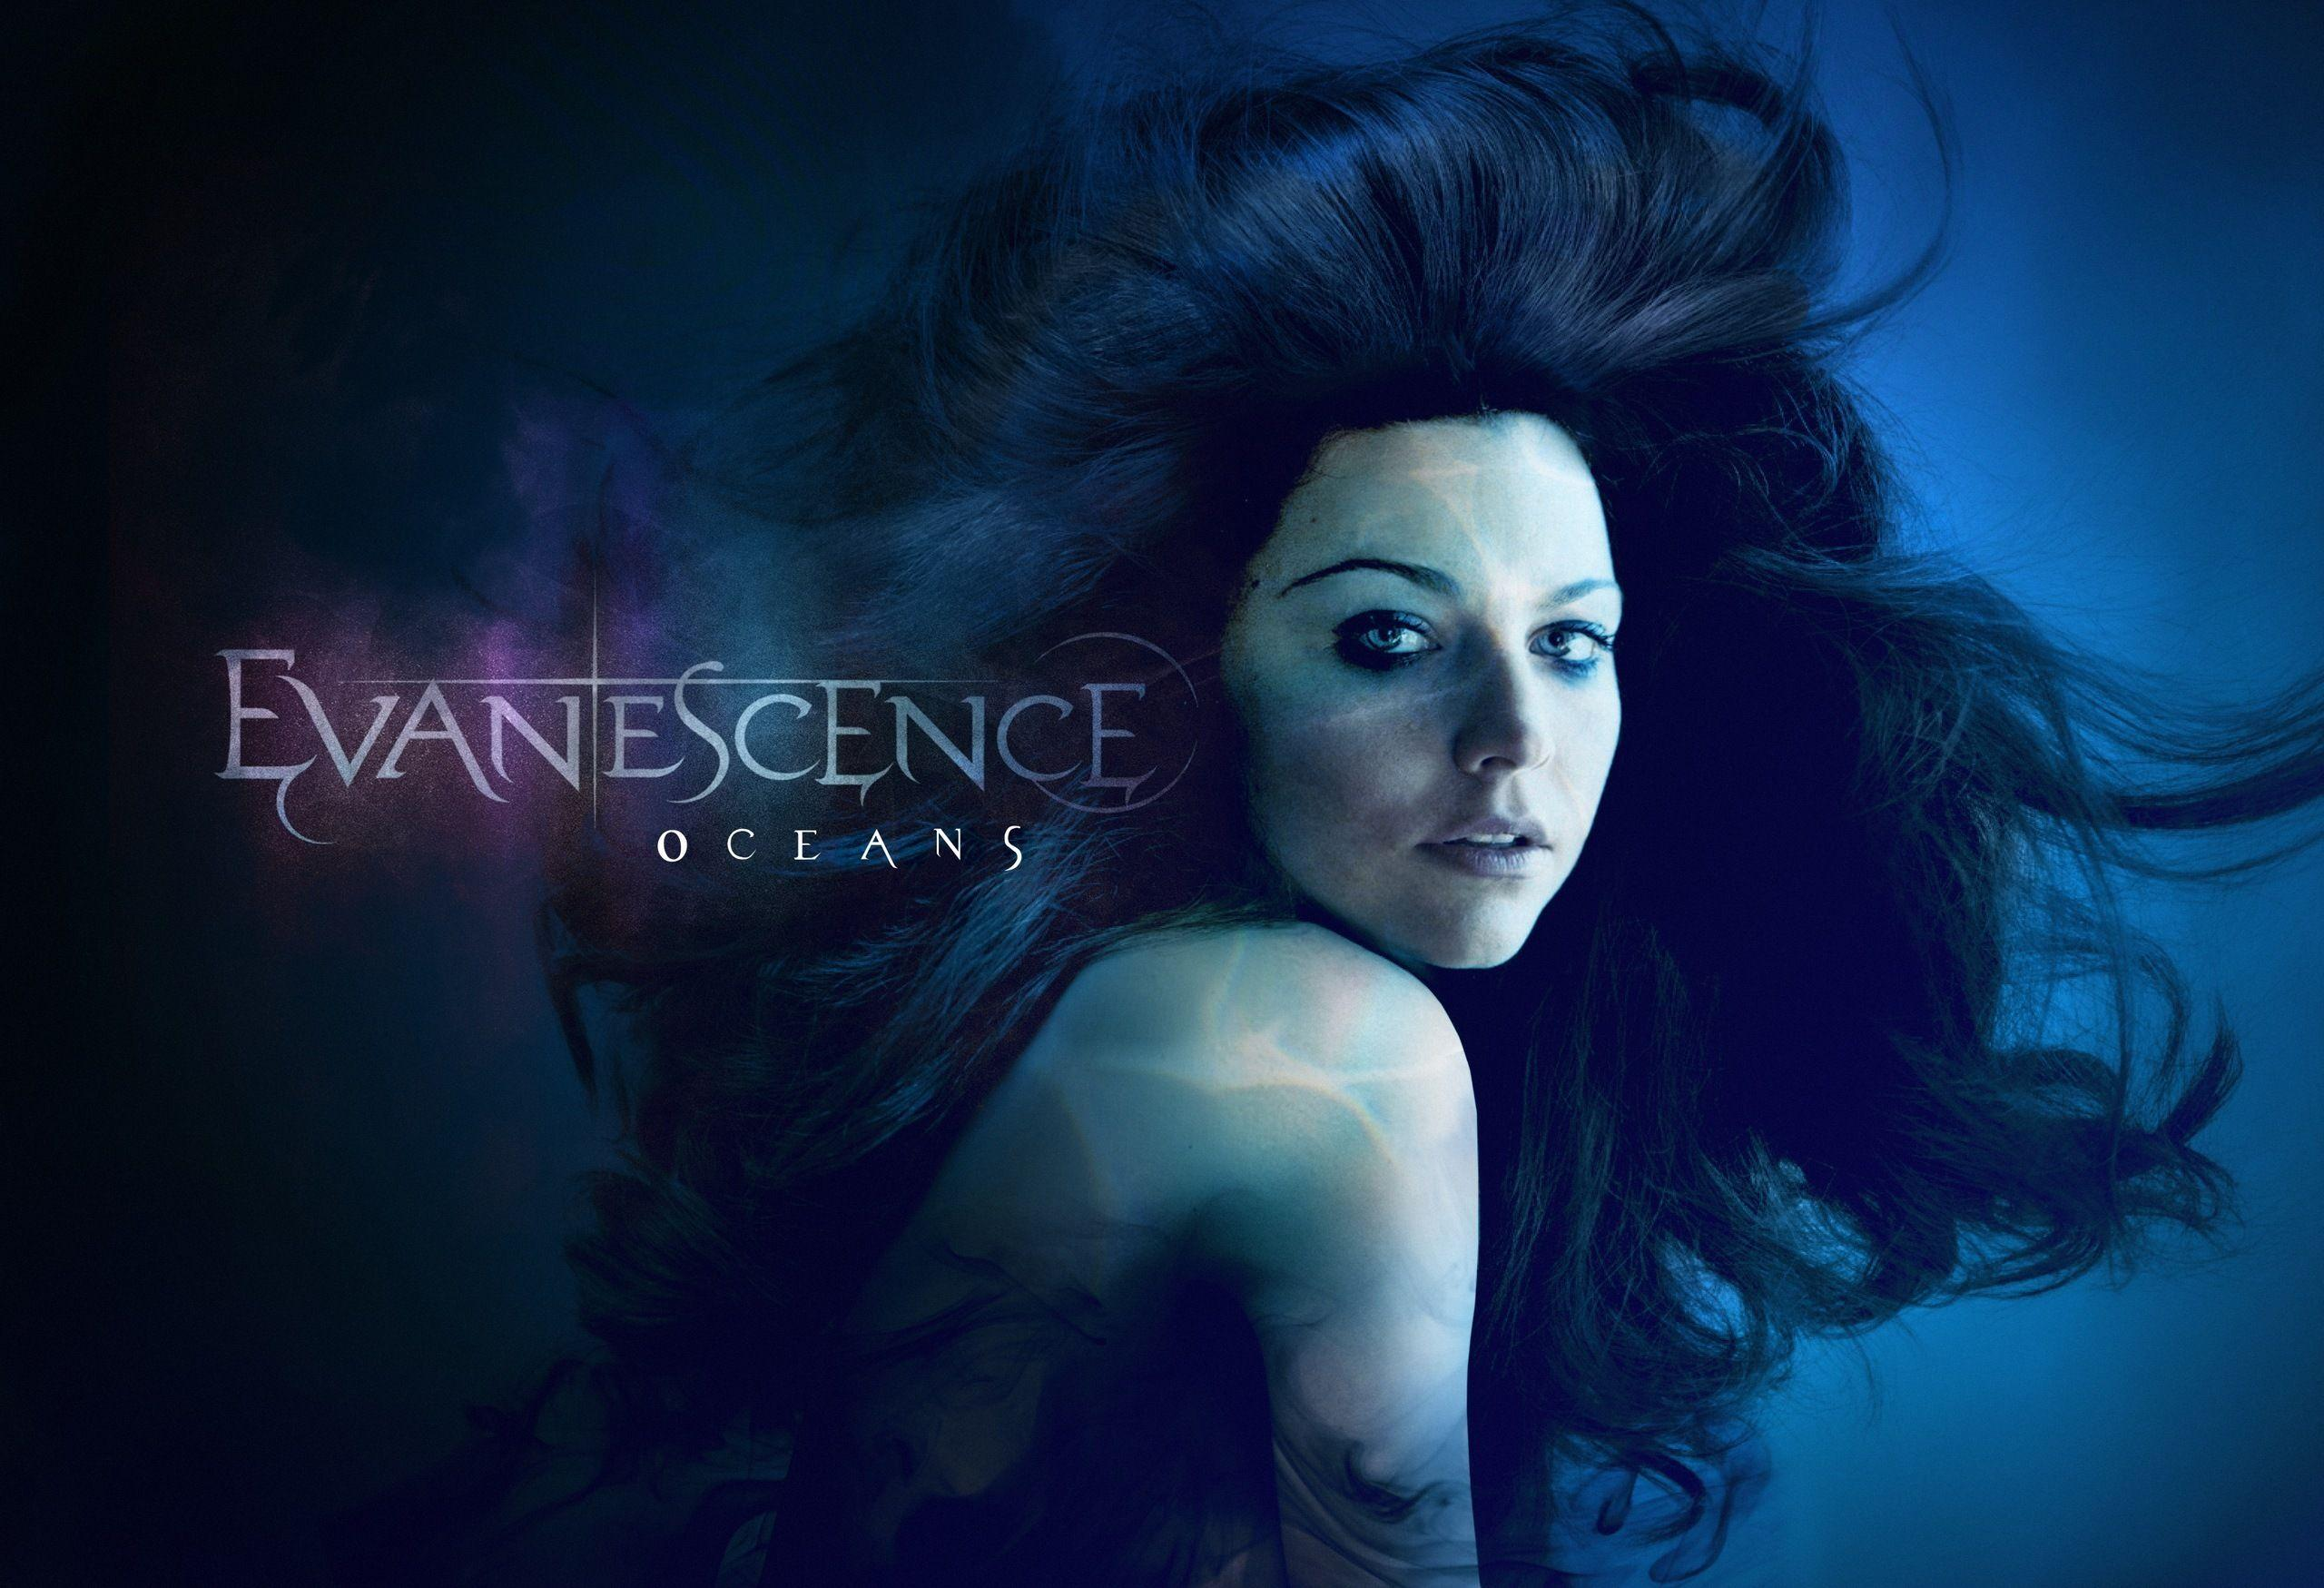 download wallpaper 1920x1080 evanescence - photo #2